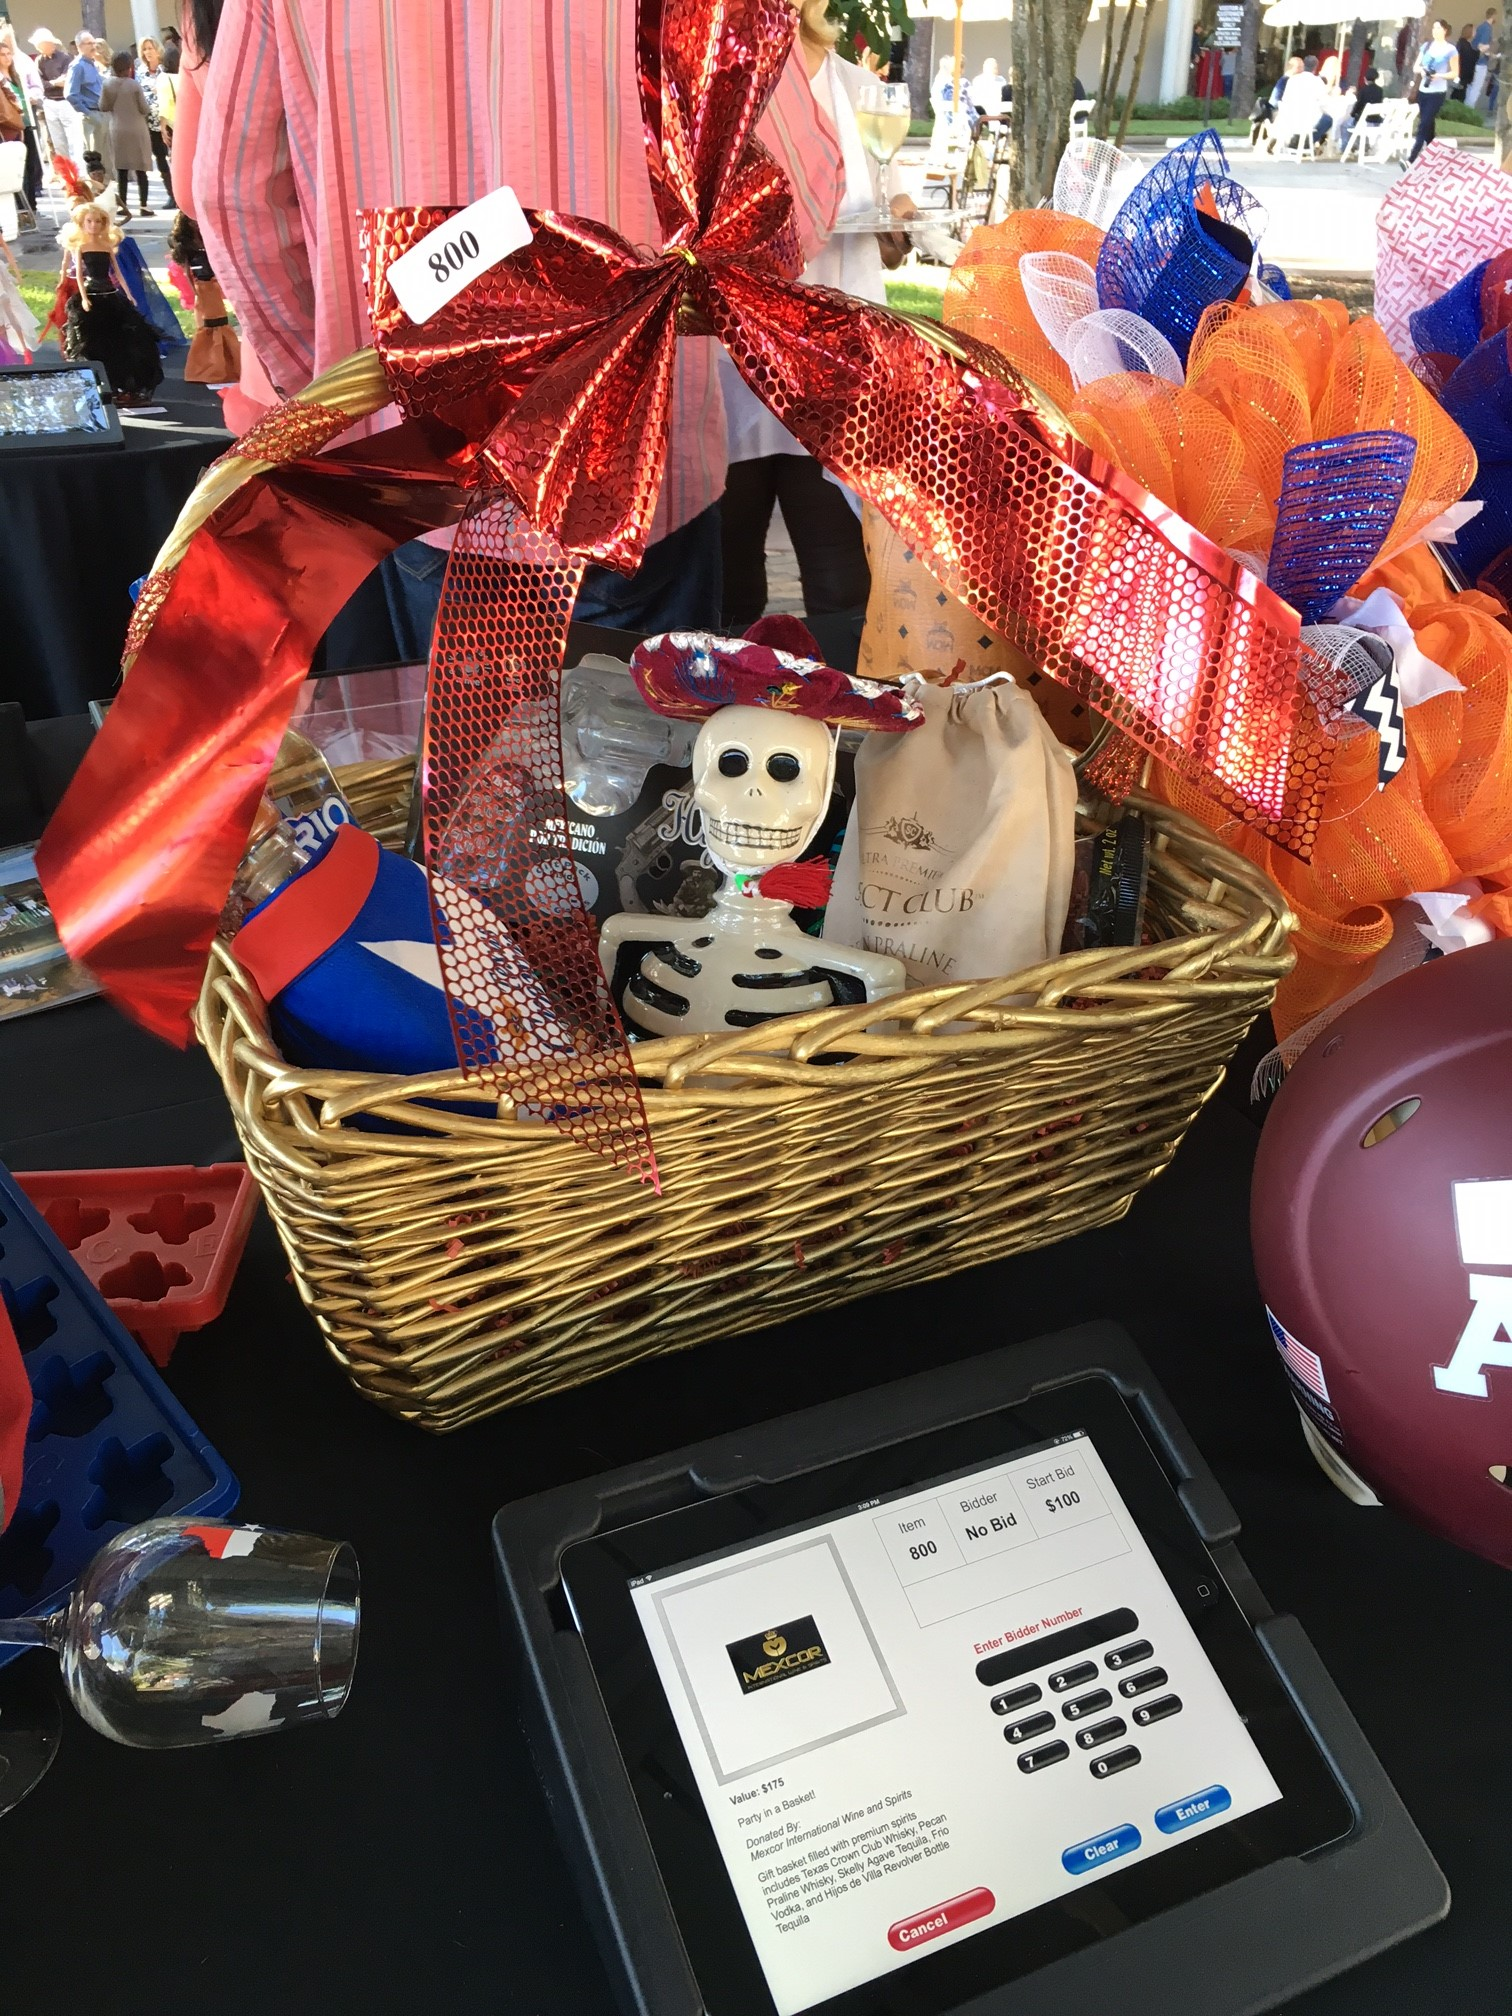 Silent Auction Tequlia Basket